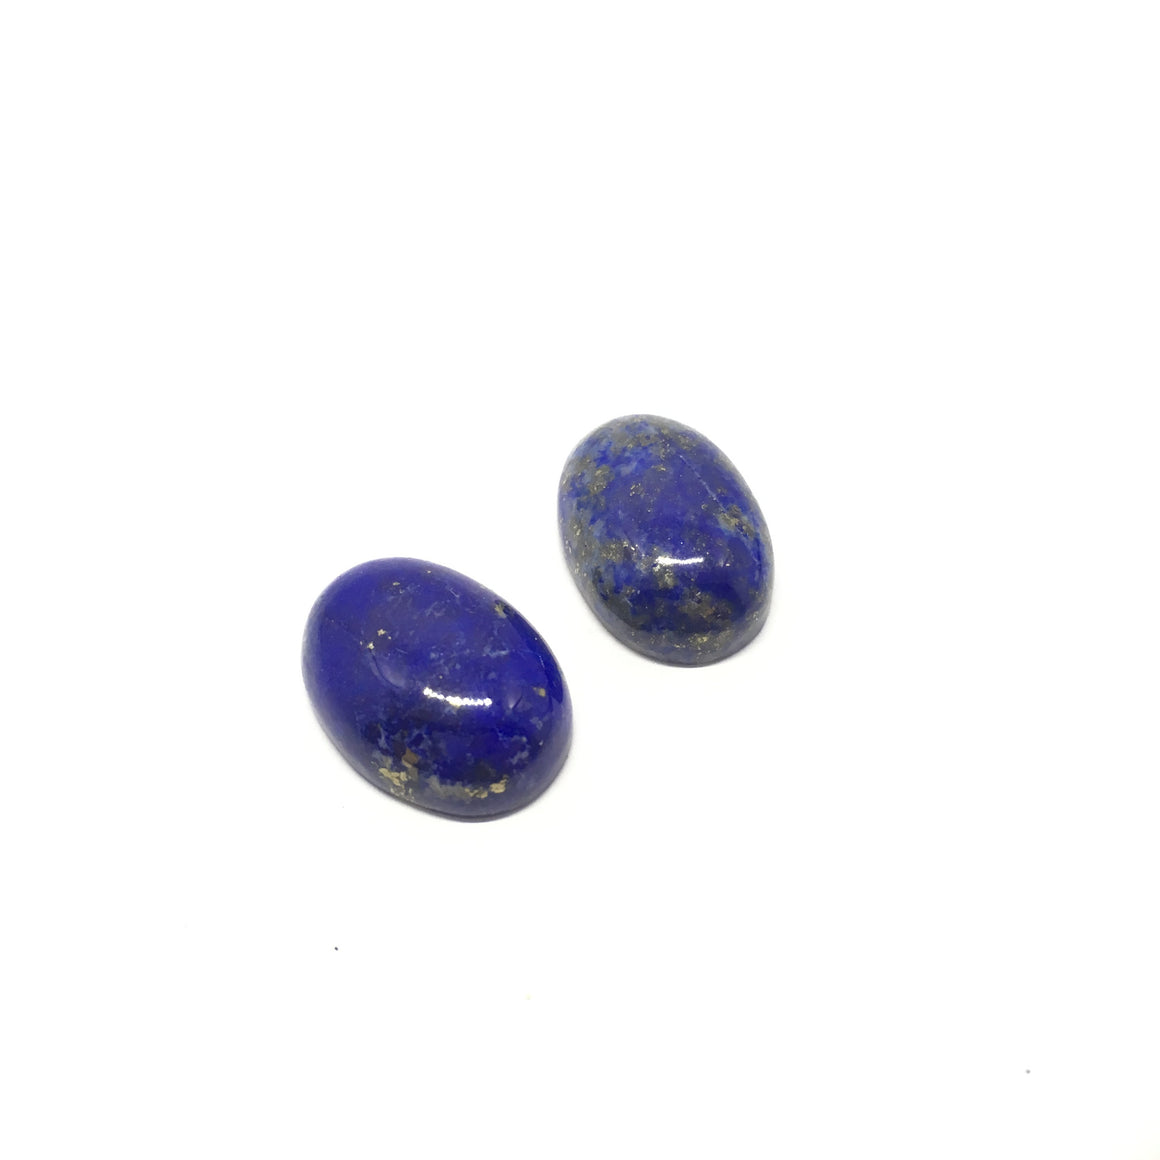 Lapis Lazuli Cabochon - Lapis Cabochon For Ring Oval Cut - 28.45 Carat